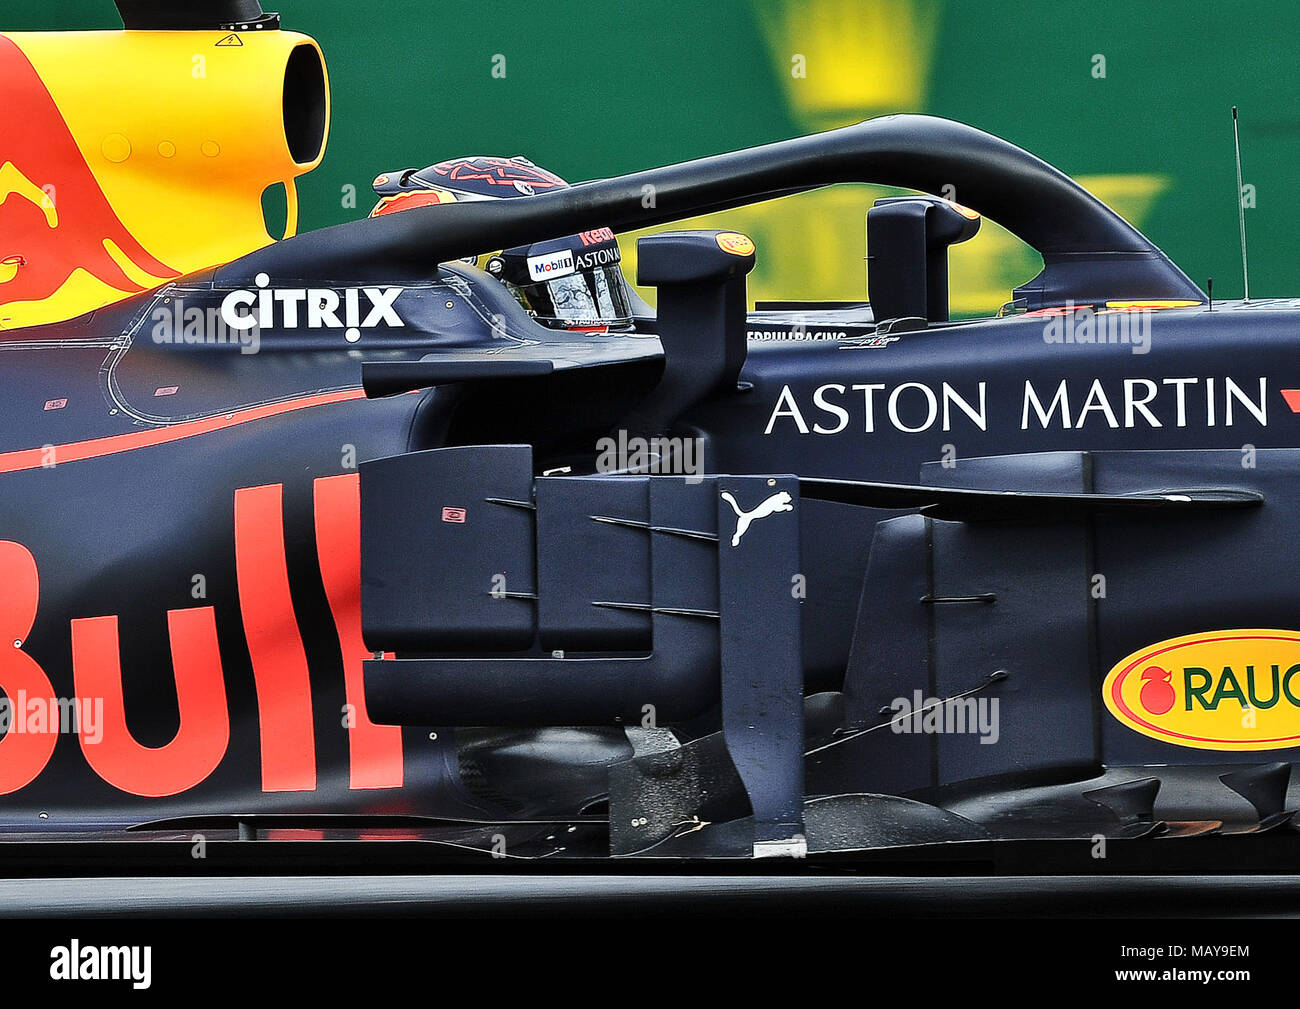 Max Verstappen Of Aston Martin Red Bull Racing Day 3 Of The 2018 Formula 1 Rolex Australian Grand Prix Held At The Circuit Of Albert Park Melbourne Victoria On The 24th March